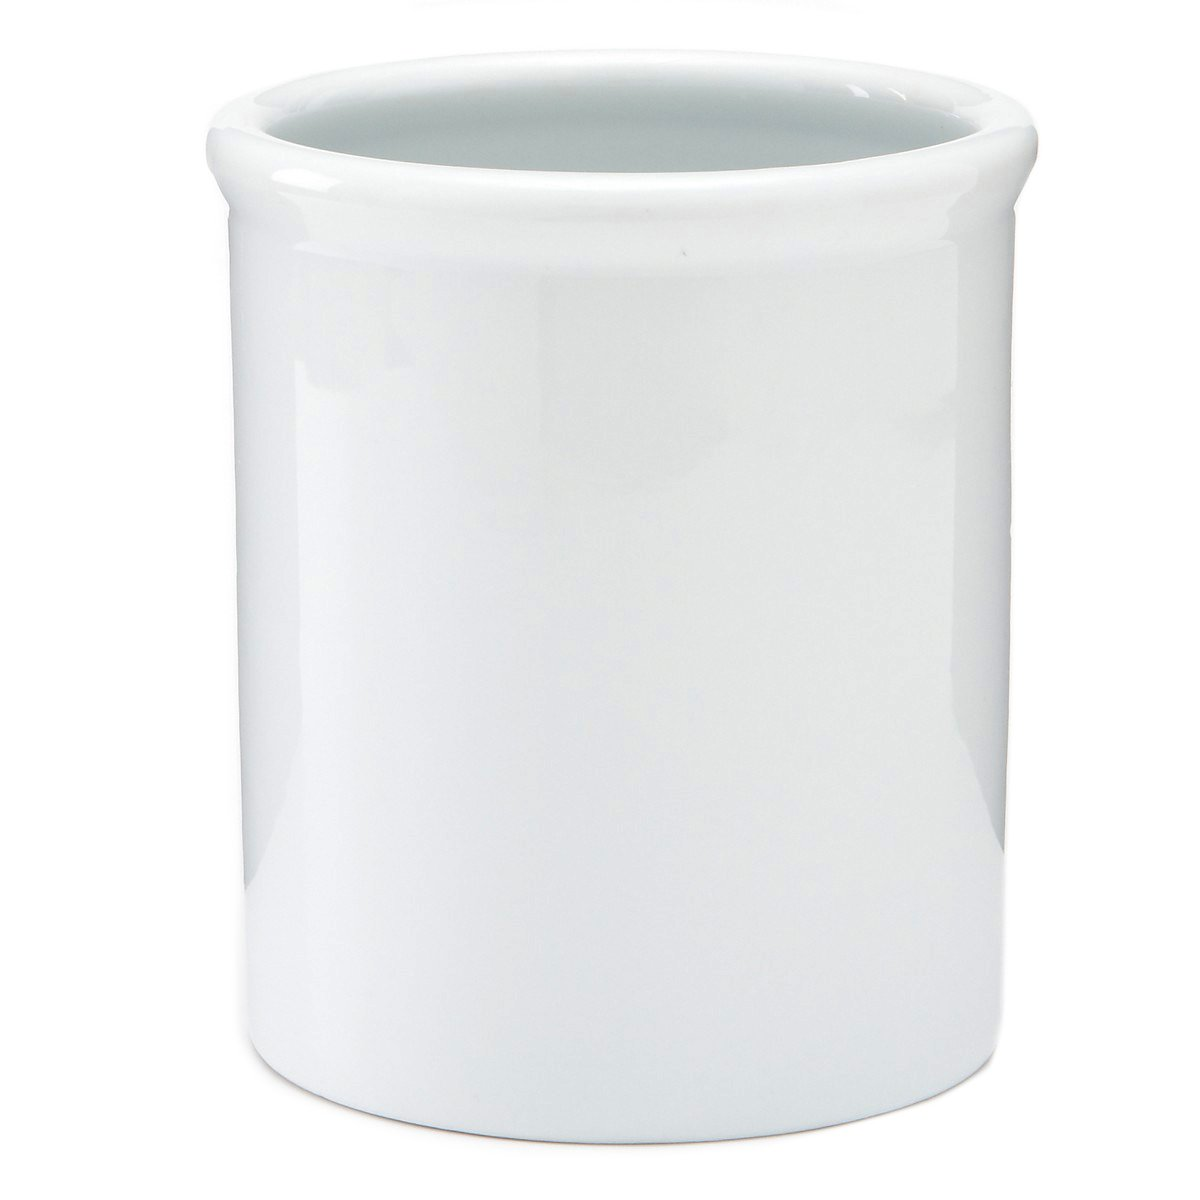 2PO Pure White Porcelain Large Utensil Holder 6.5